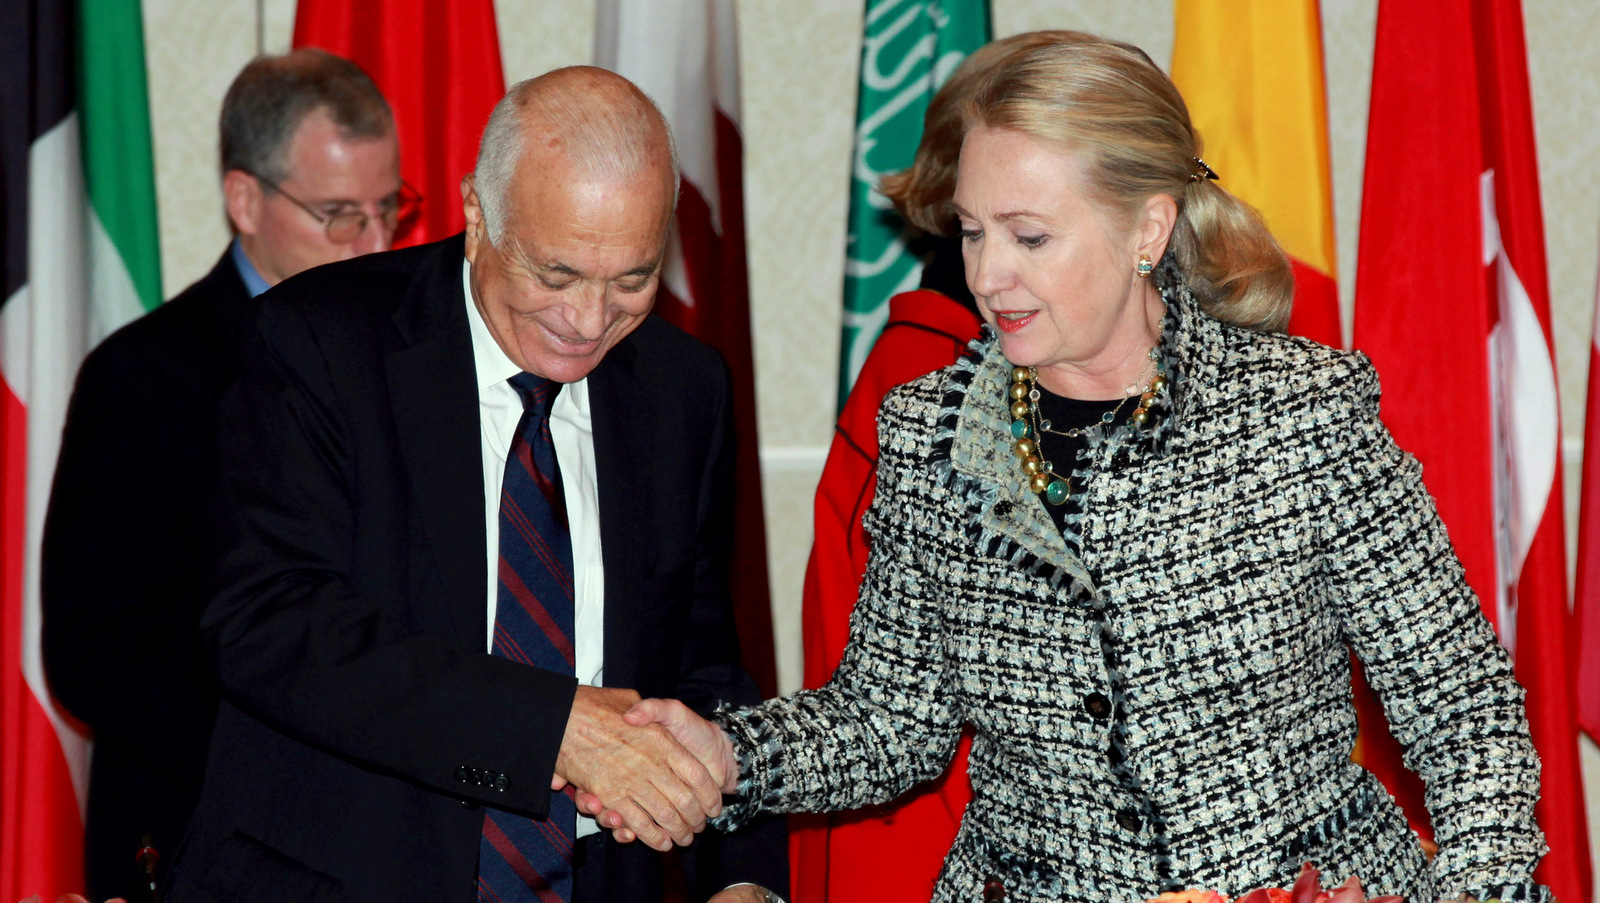 Secretary of State Hillary Rodham Clinton, right, welcomes Nabil Elaraby, left, Head of the Arab League as she hosts a gathering of Friends of Syria group on Friday, Sept. 28, 2012 in New York. (AP Photo/David Karp))